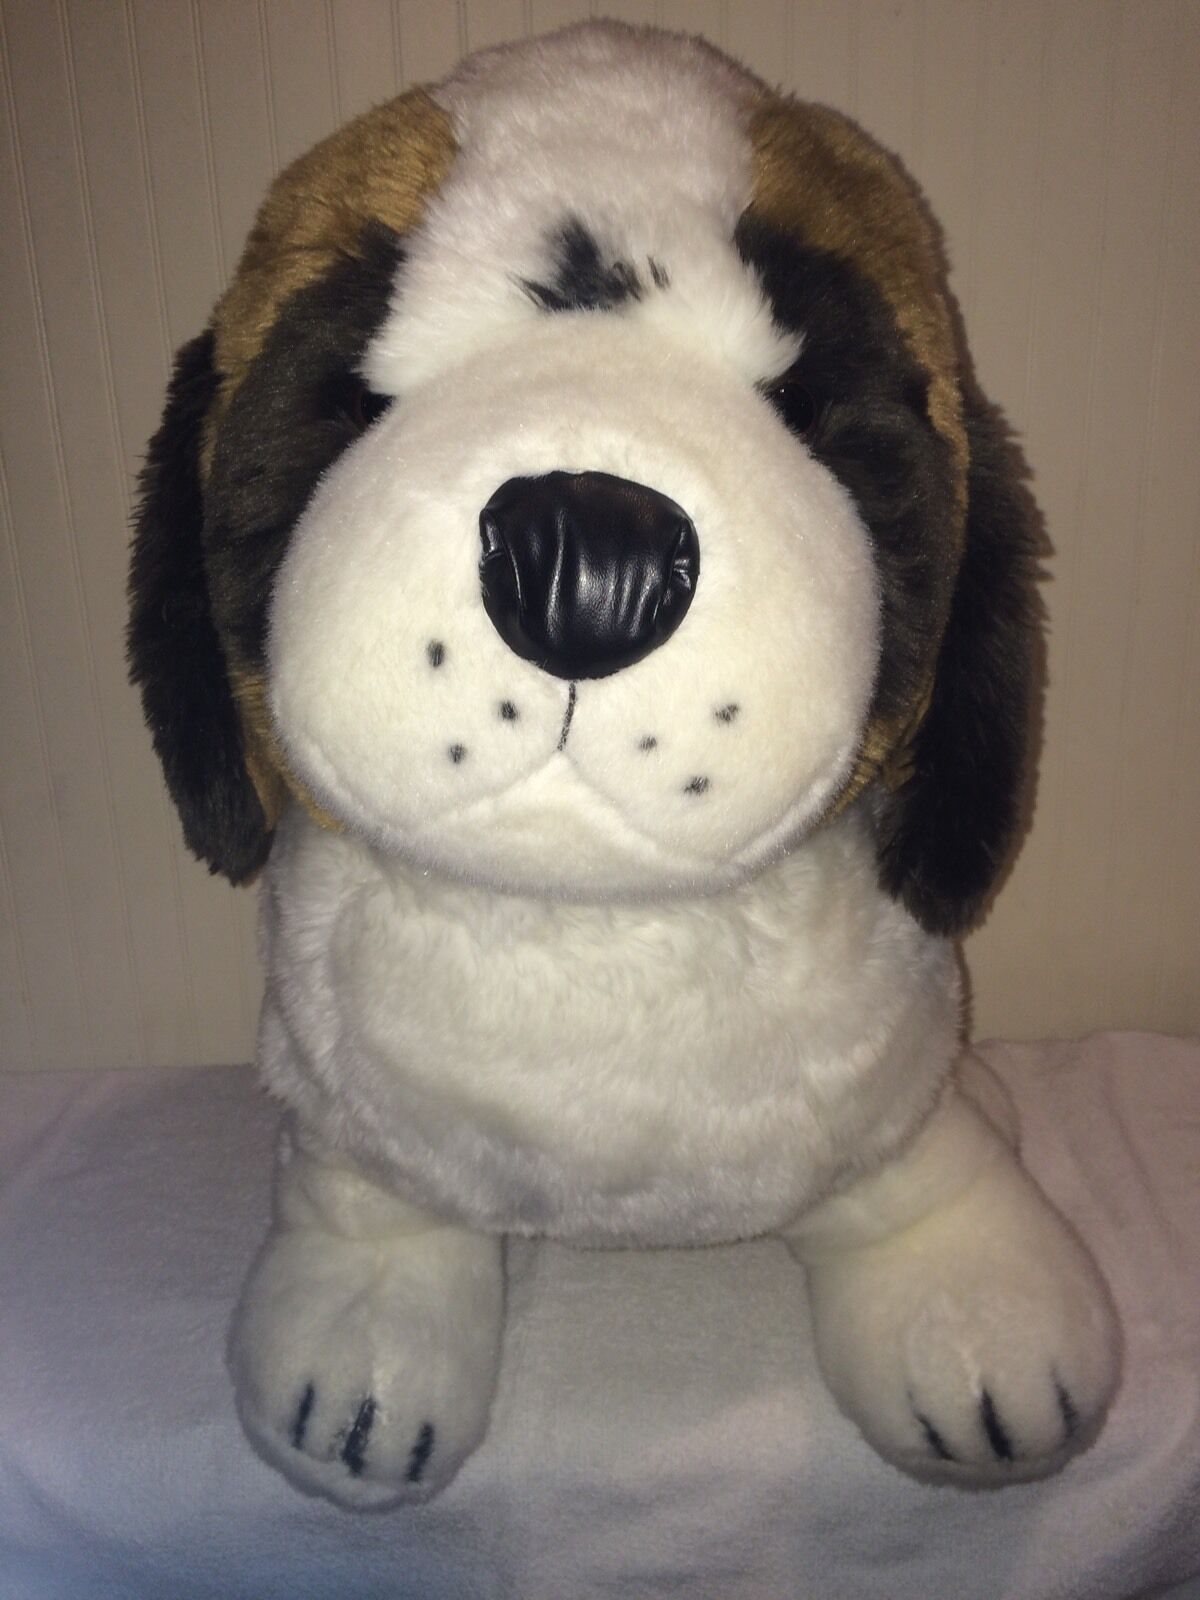 St. St Saint Bernard Dog Giant Plush Large 24  Stuffed marrone bianca Sitting Huge